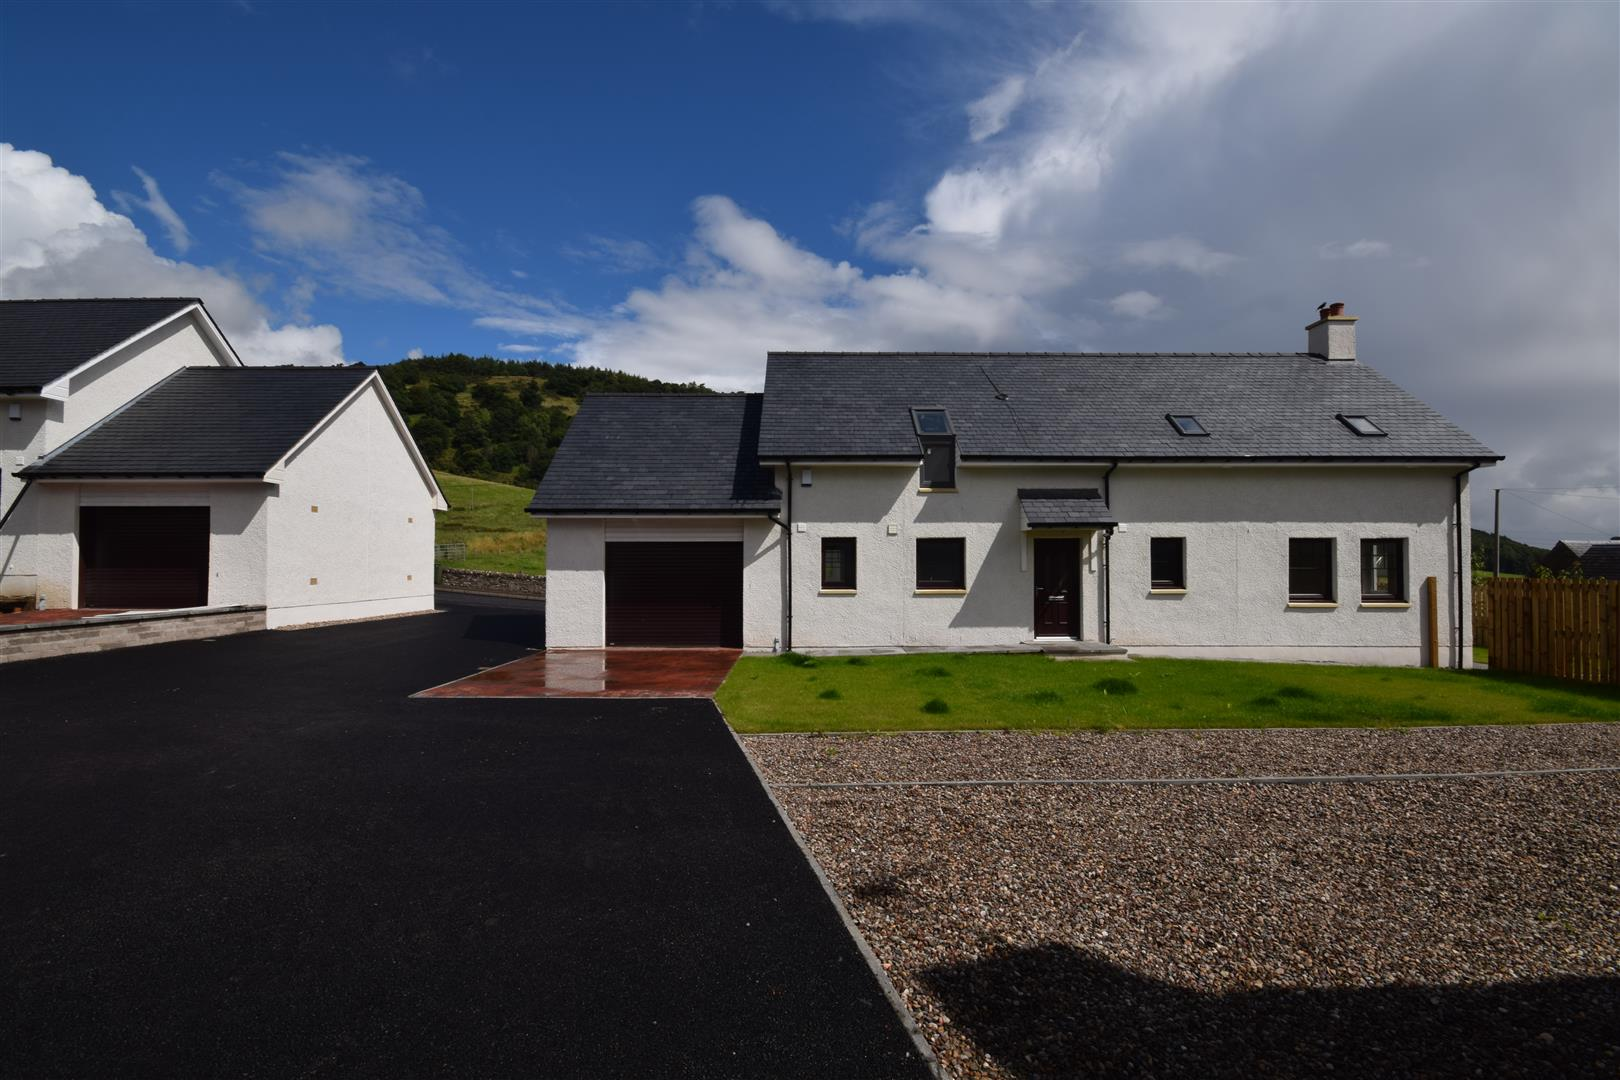 The Steadings, Plot 1, New Development, Abernyte, Perth, Perthshire, PH14 9ST, UK